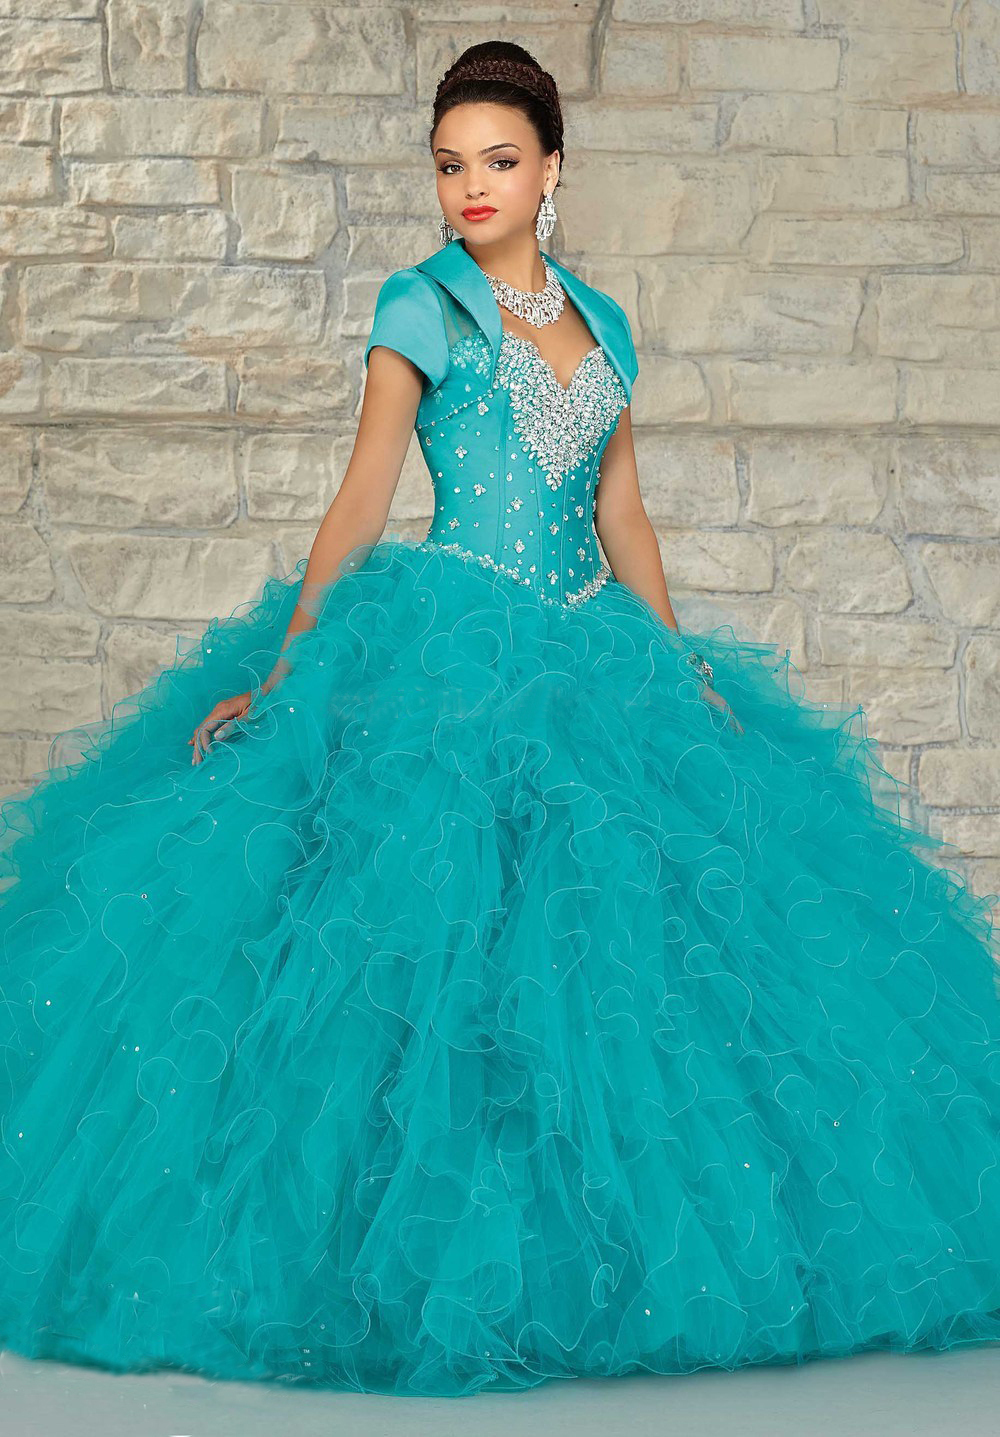 New-Style-Turquoise-Quinceanera-Dresses-With-Jacket-2015-Ball-Gown-Ruffled-Debutante-Dress-For-15-Years (1).jpg